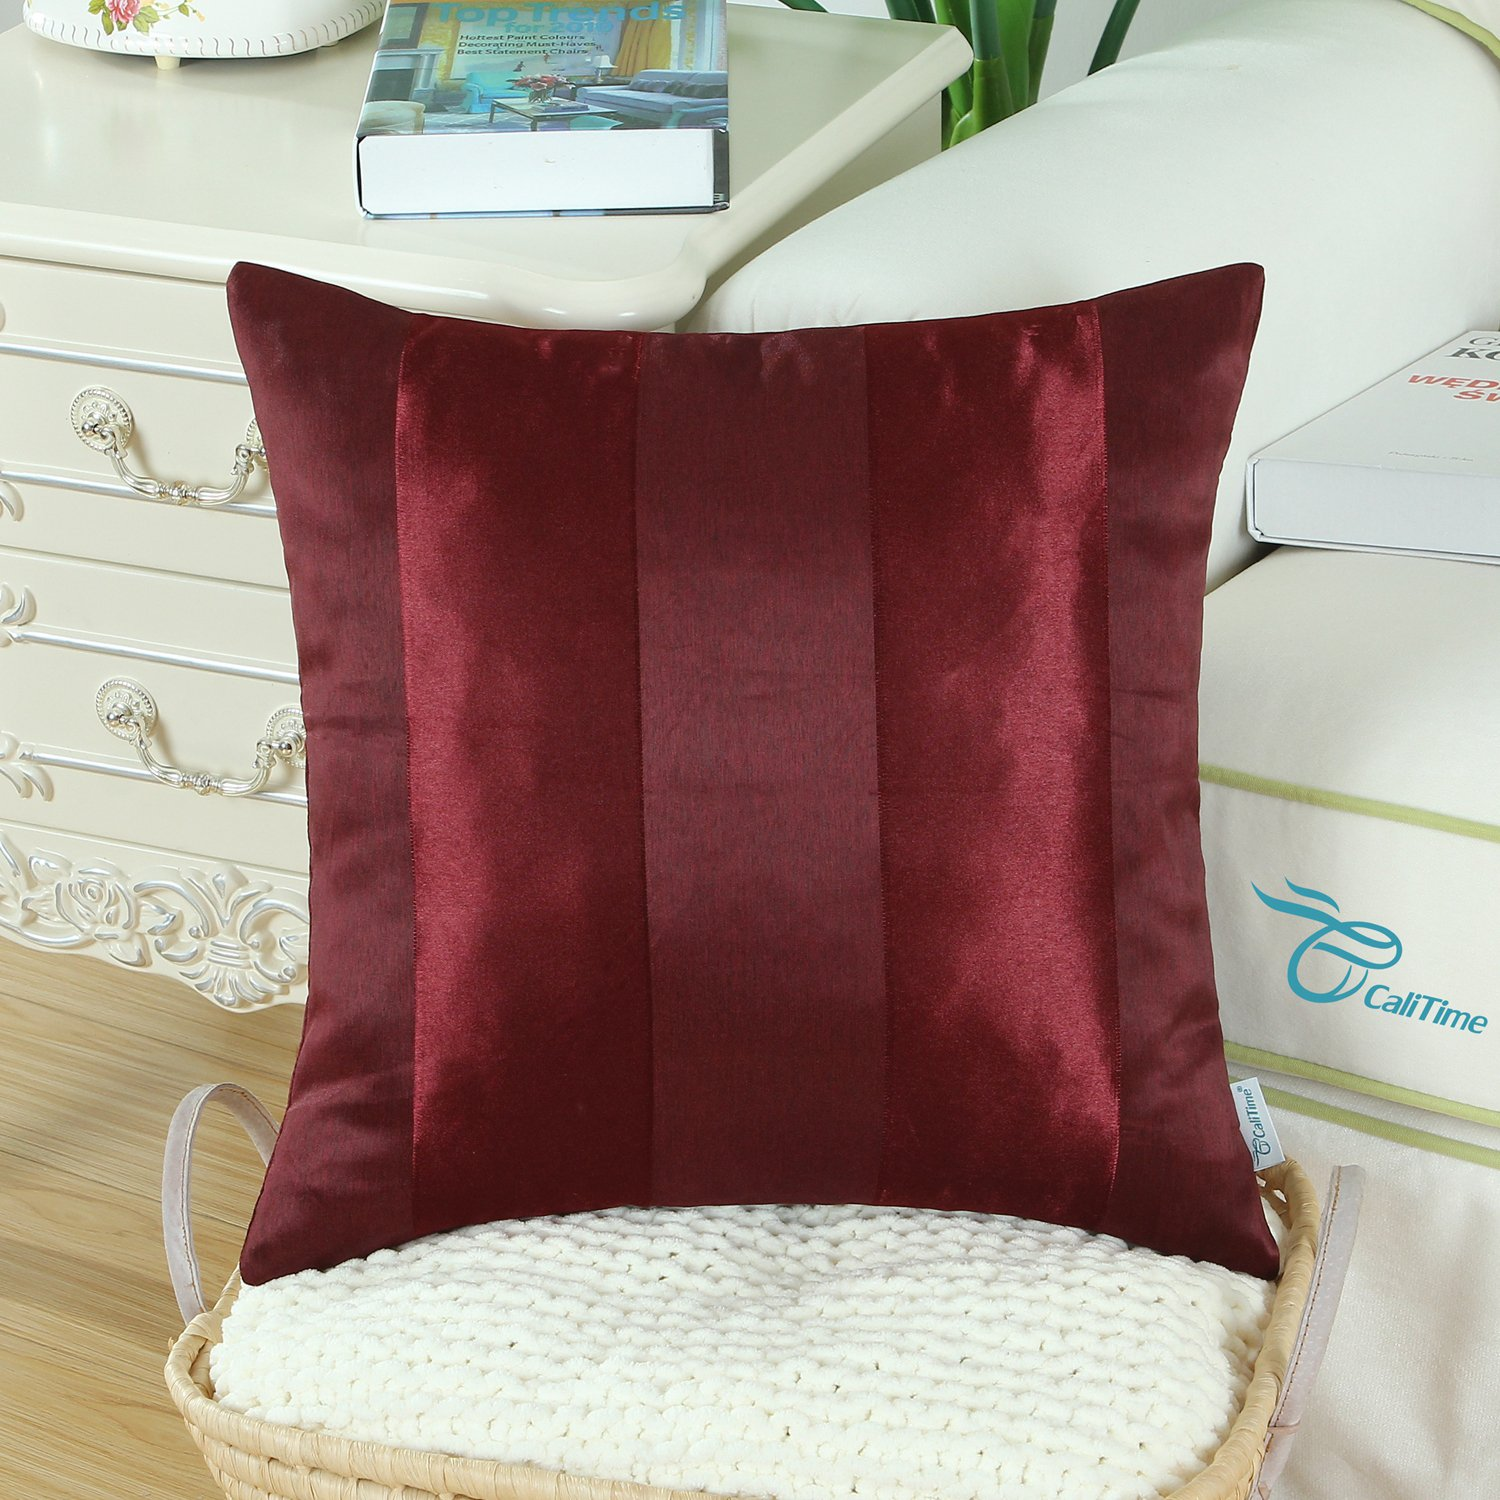 wonderful of comfortable throw and mesmerizing full sofa the decor stylish vertigo wool home or cover for cushions fossflakes cushion pillows burgundy armchair size accessories pillow hansen filling pattern fritz